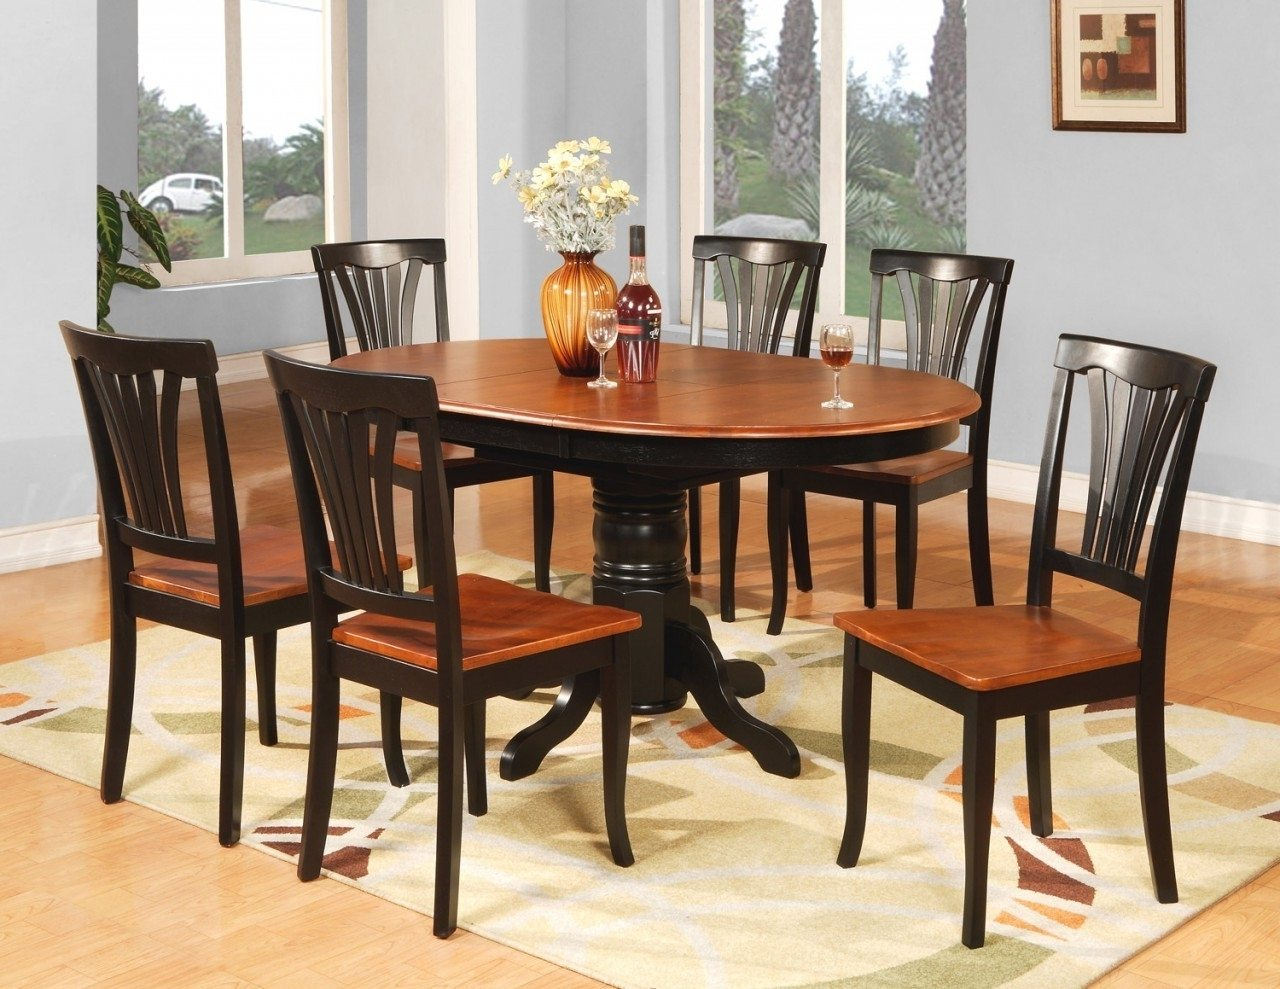 Cheap dining room tables chairs how to bargain for for Cheap dining room sets